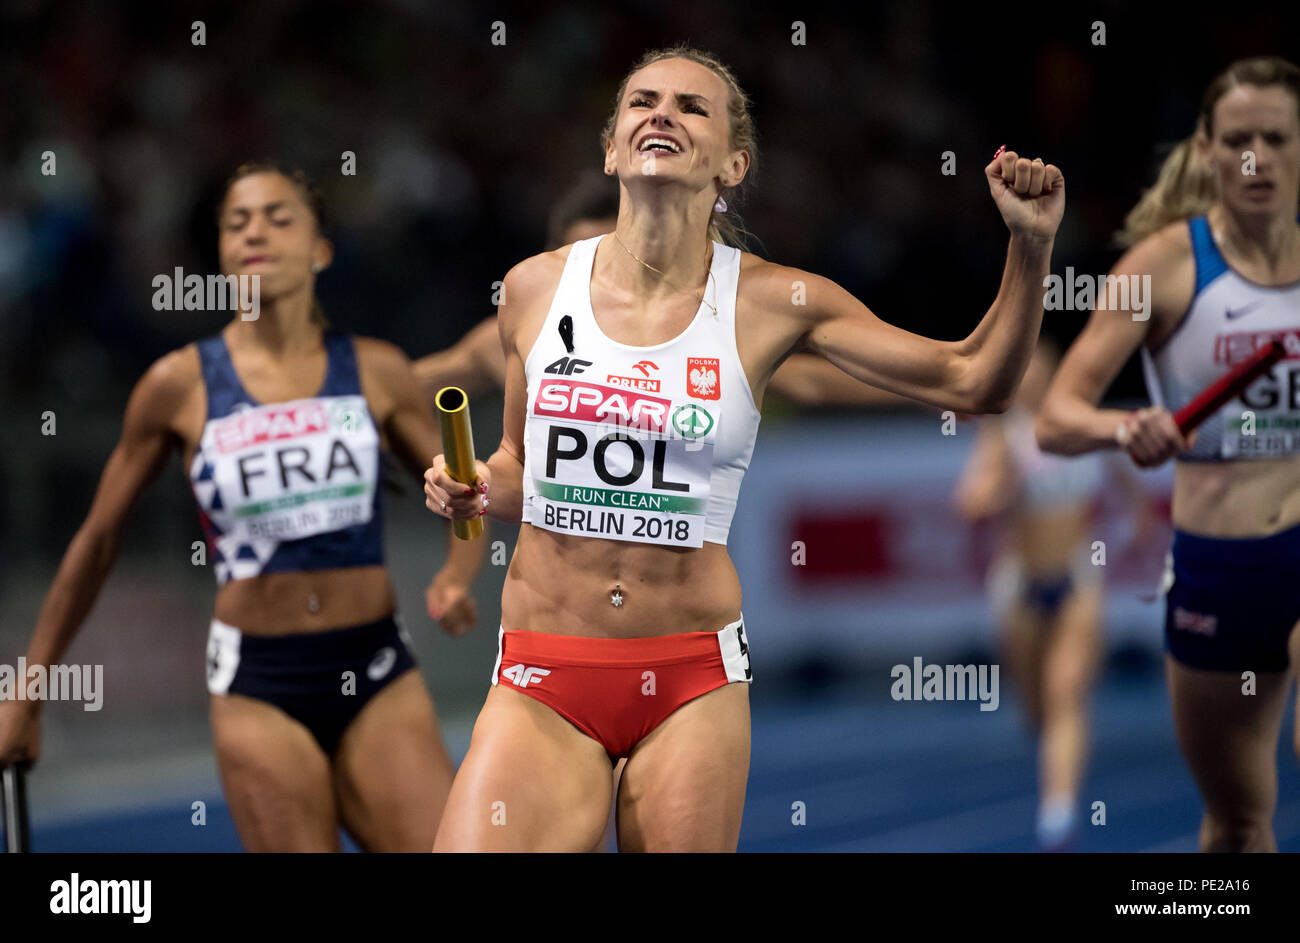 Berlin, Germany. 11th Aug, 2018. Track and Field, European Championship in the Olympic Stadium, 4x400 m Relay Final, Women: Justyna Swiety-Ersetic from Poland cheers at the finish line. Credit: Sven Hoppe/dpa/Alamy Live News - Stock Image